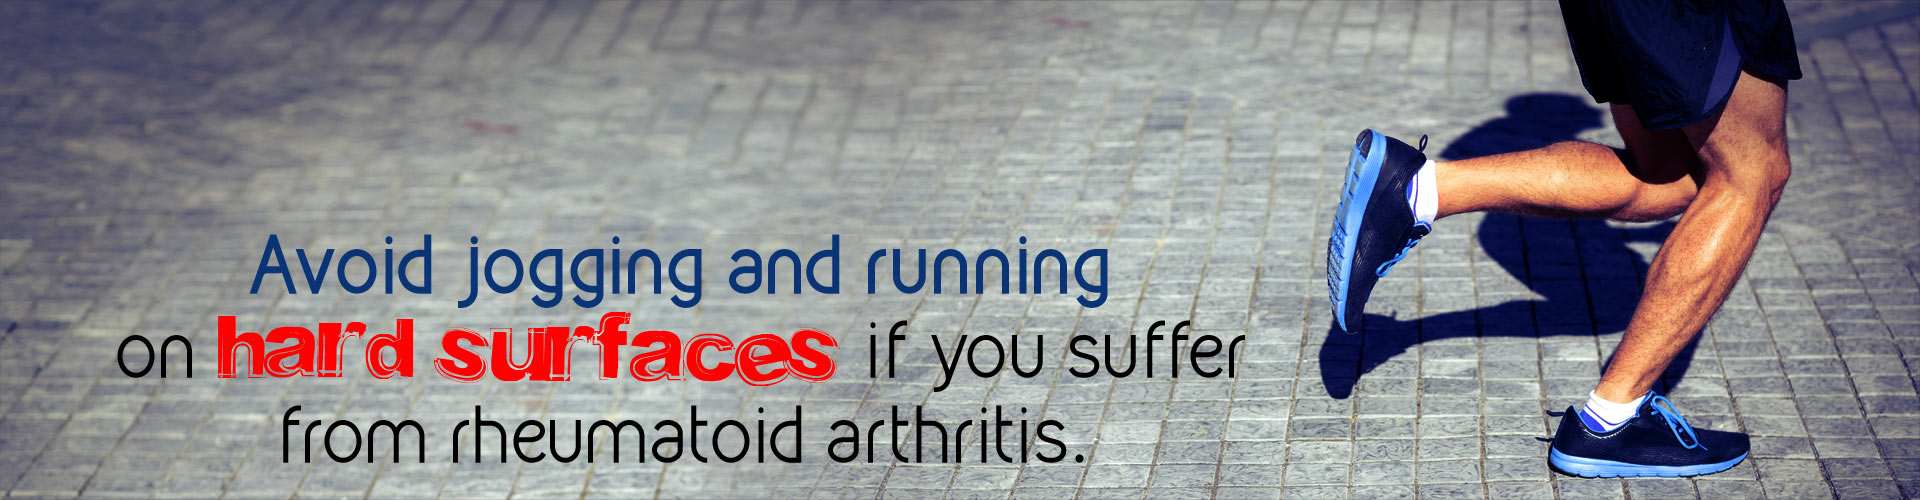 Avoid jogging and running on hard surfaces if you suffer from rheumatoid arthritis.